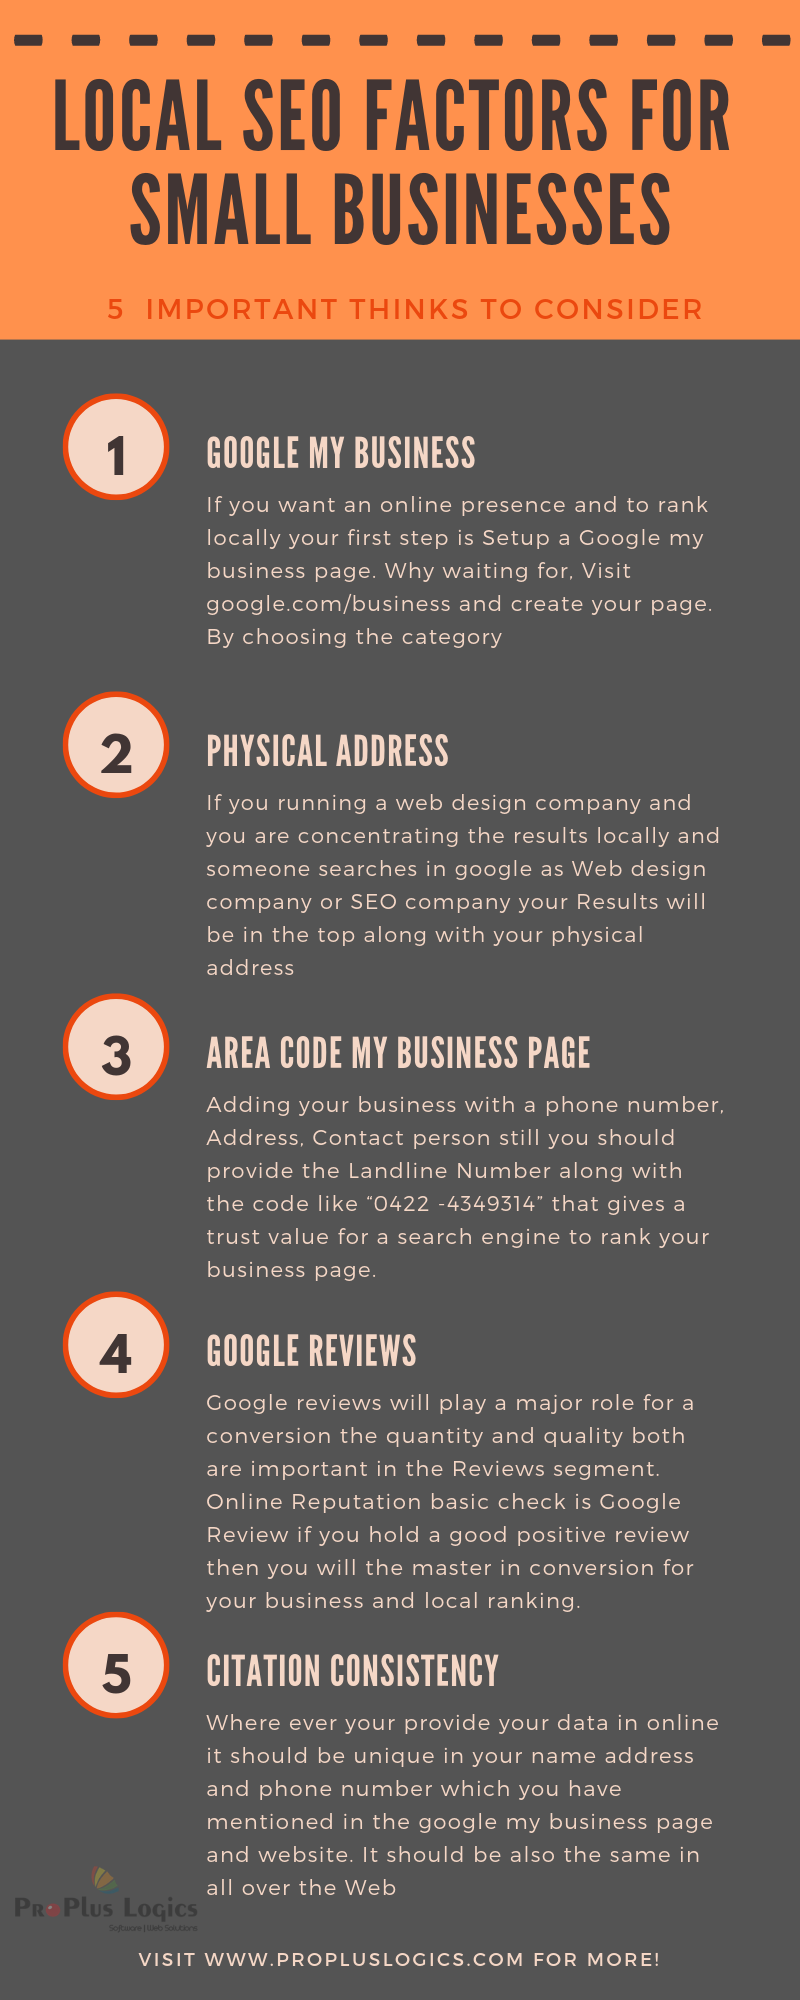 5 important thinks to consider- Google My Business Page, Google Reviews,  Citation Consistency, Physical address and area code of business